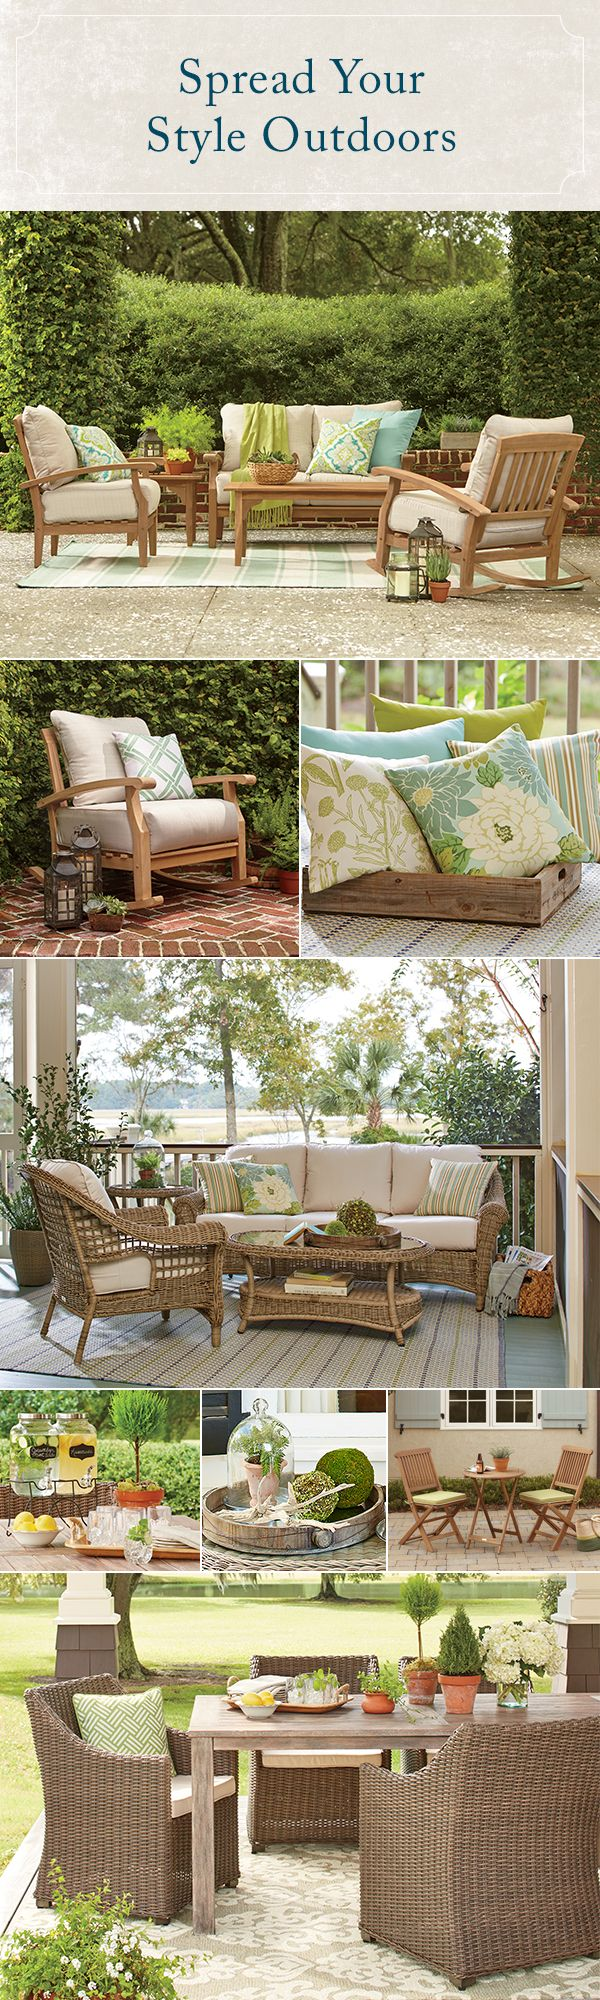 Ship Furniture Across Country Style Images Design Inspiration